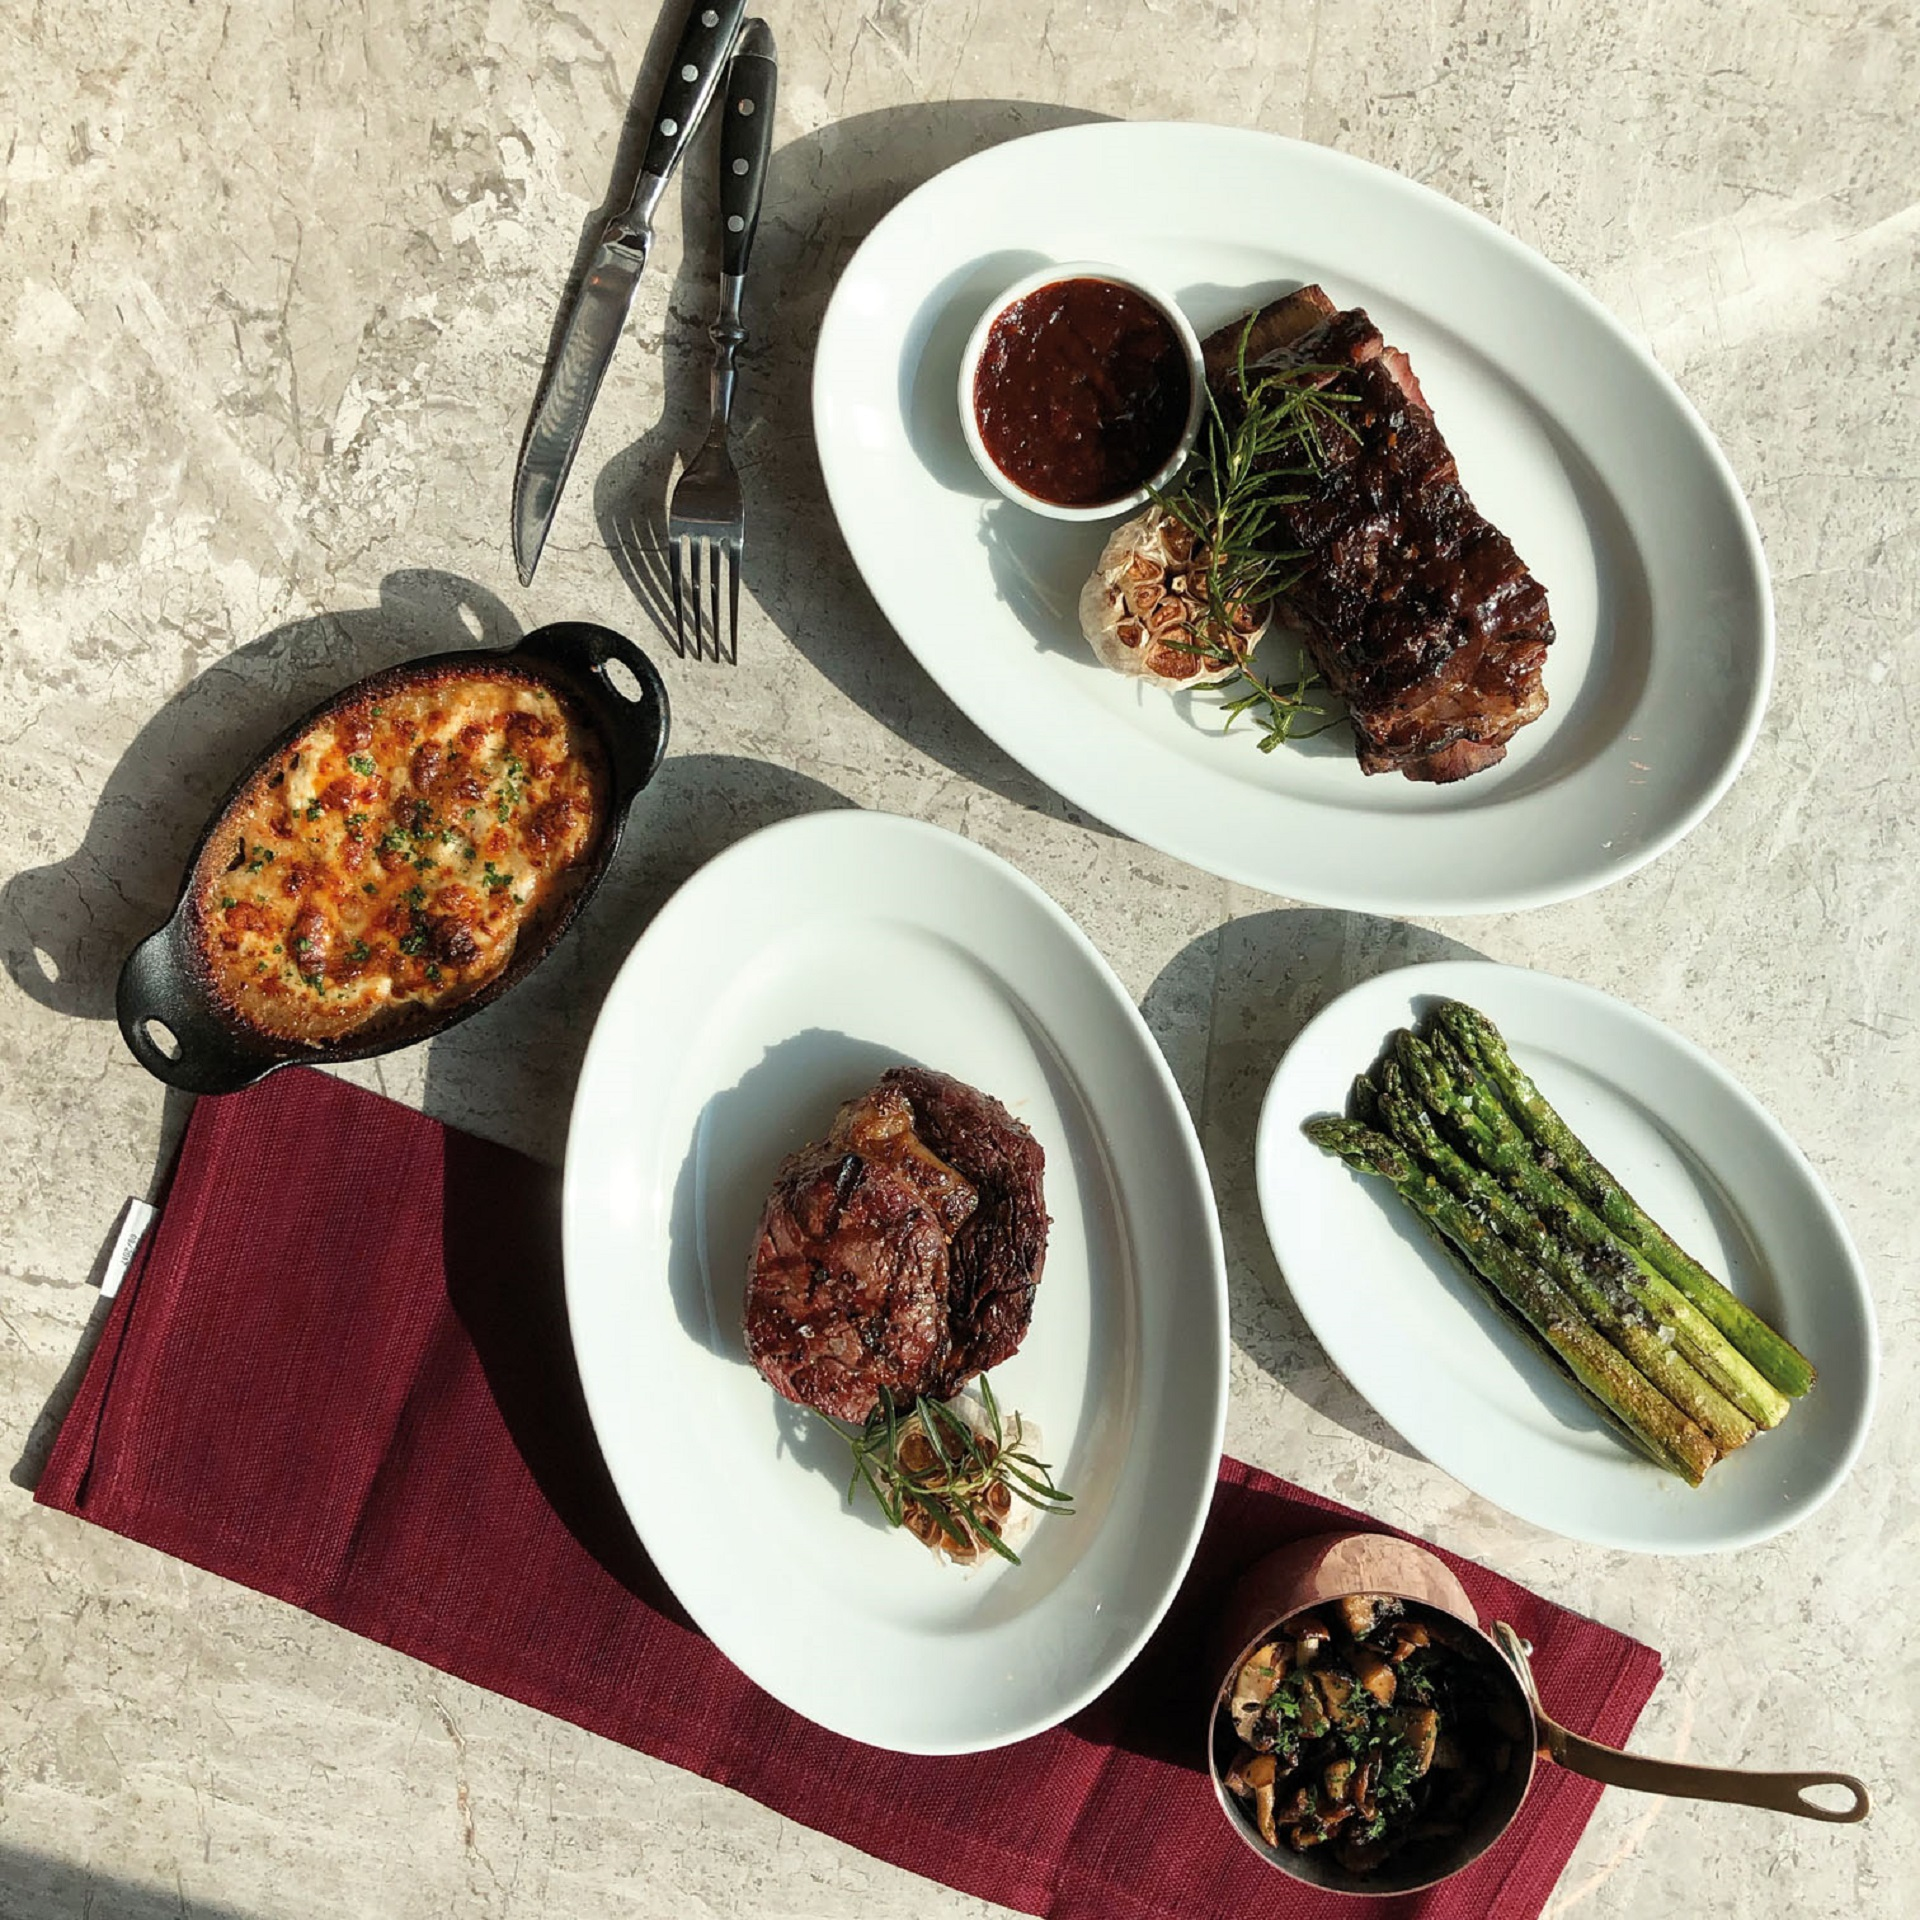 Great steaks with Chef Josephine Loke at 665°F